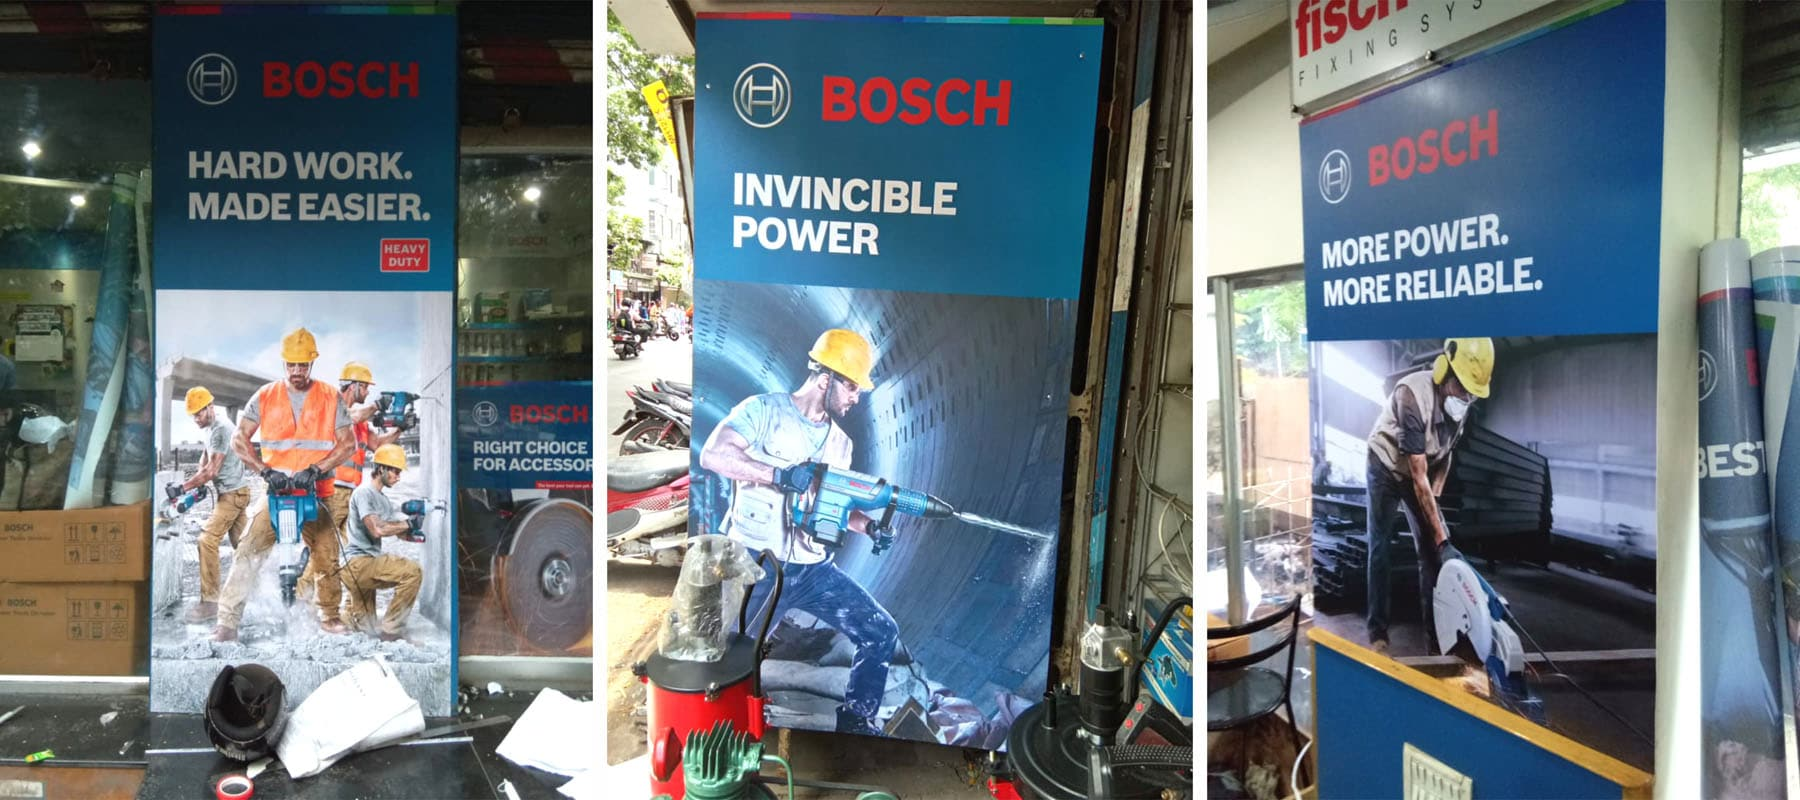 Three advertisement jobs of the Bosch tool company printed on SAV - self adhesive vinyl and pasted in a store